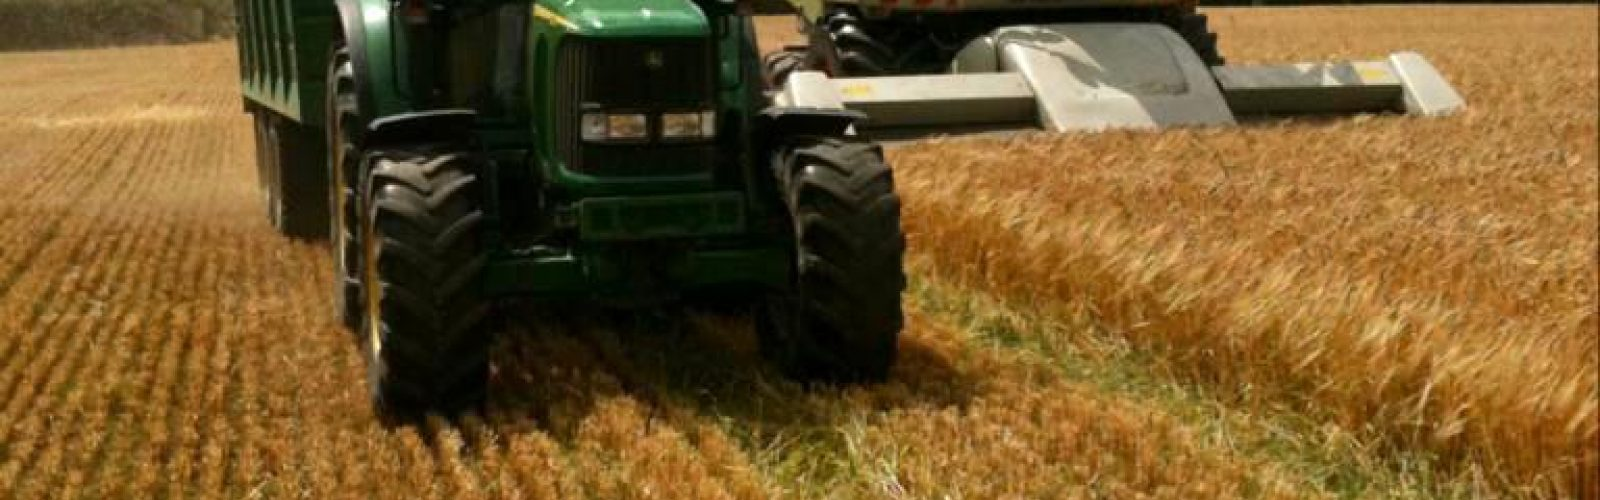 Act now to know what is required to meet your feed budget for the winter